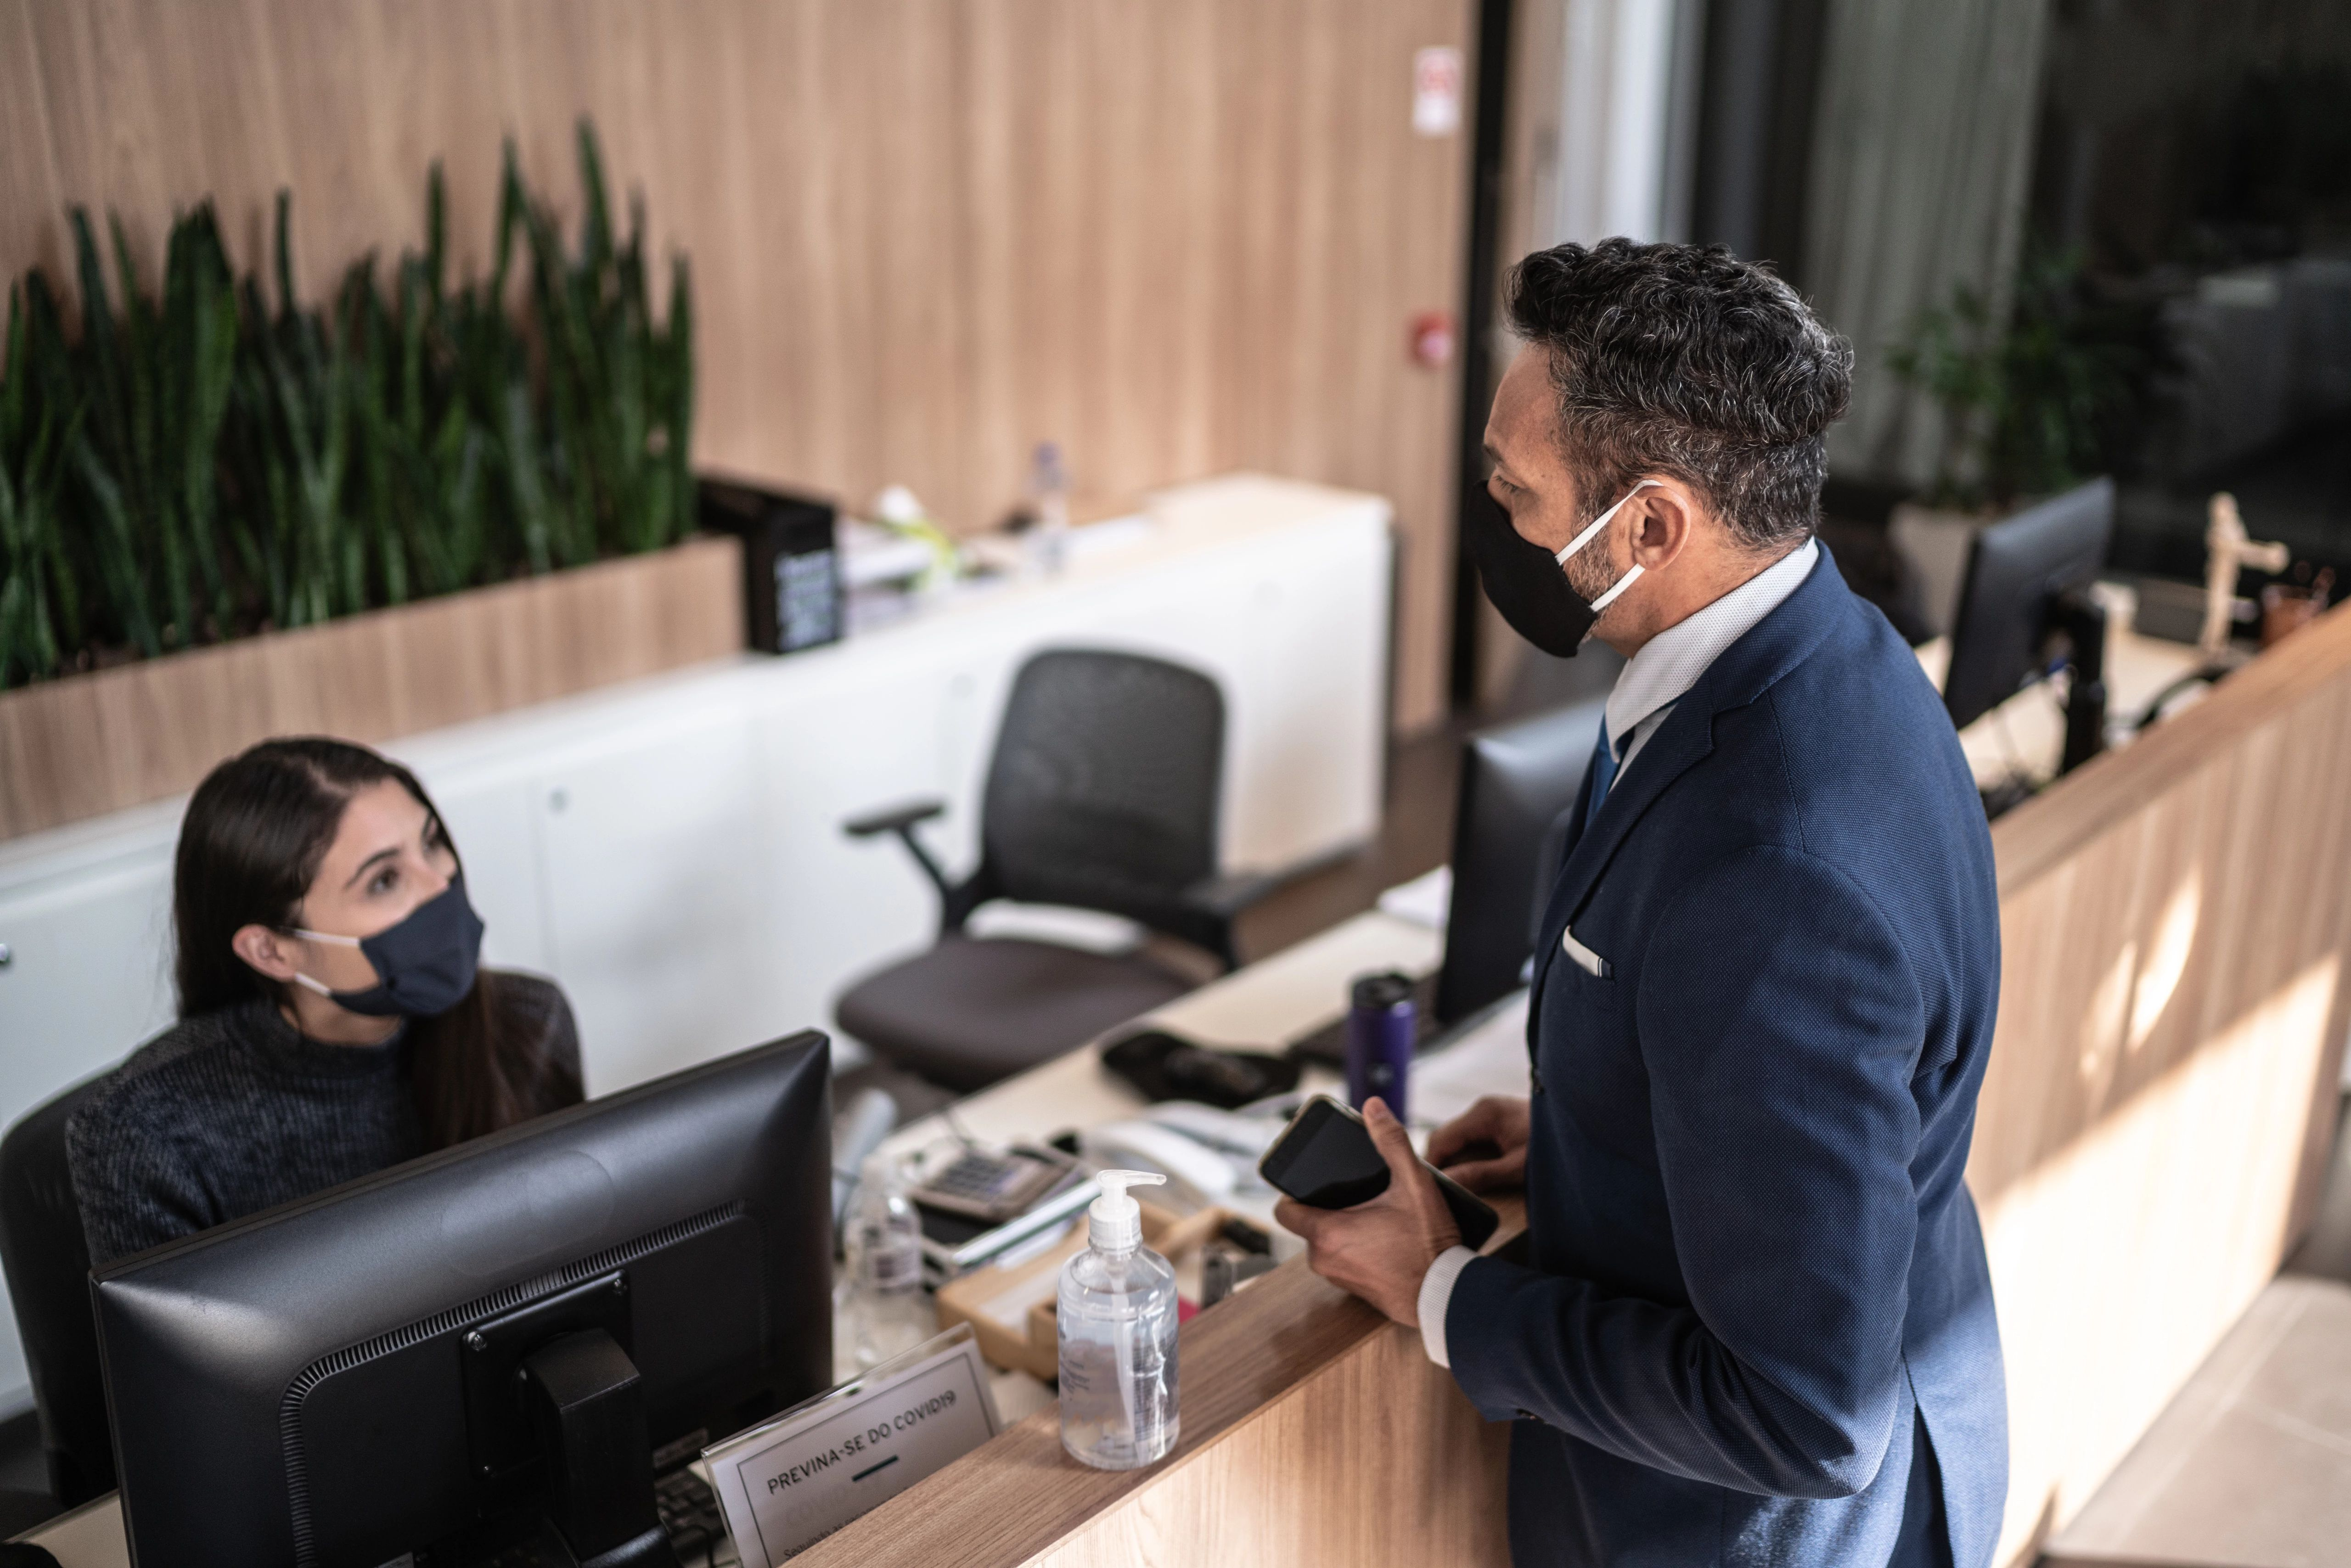 Small businesses in leisure and hospitality have had to increase wages to attract employees. (Getty Images)